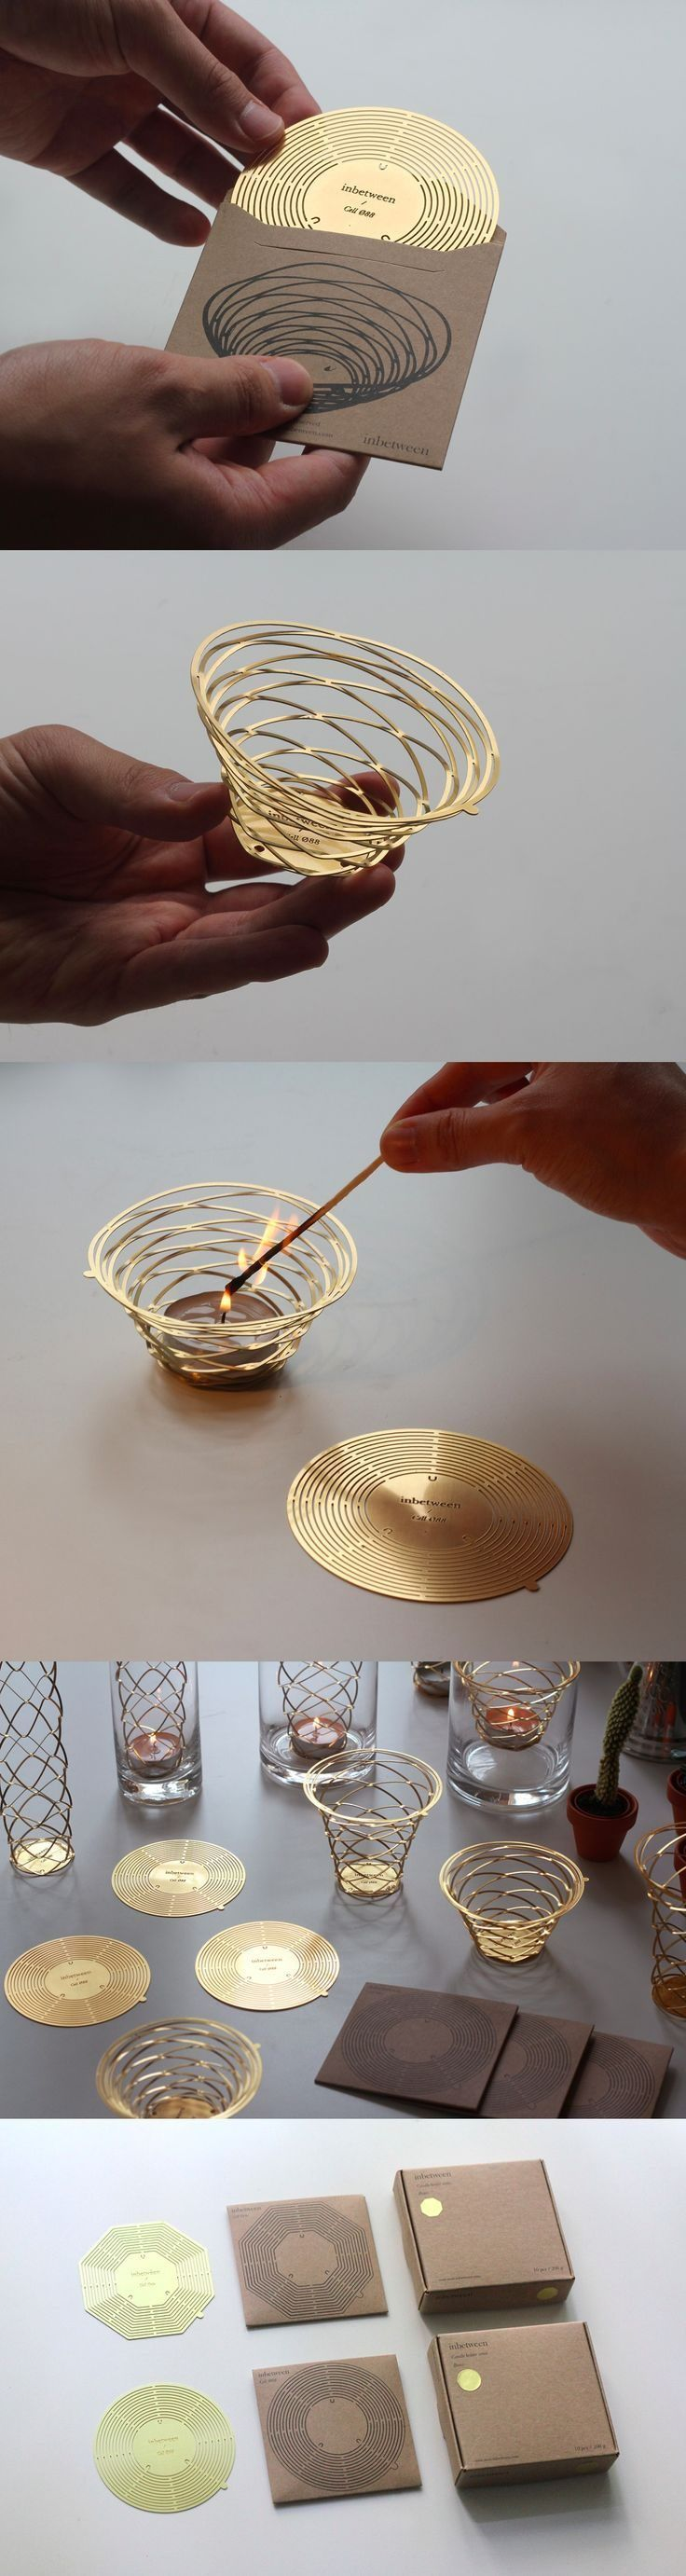 Brass pop up candle holder by studio inbetween - From up North